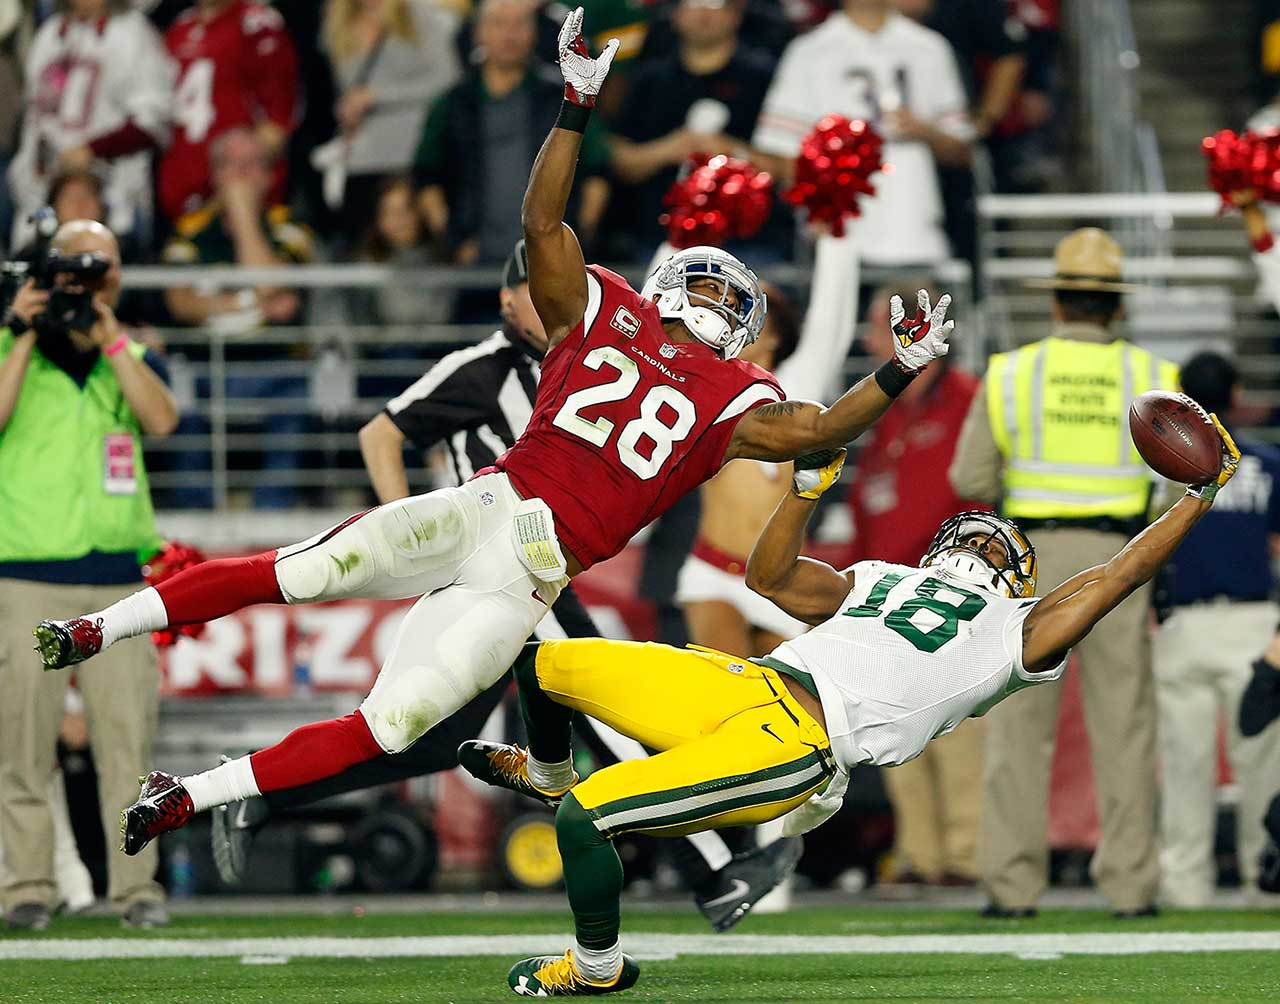 Randall Cobb made this amazing one-handed grab to put the Packers inside the 10 but the play was negated by offsetting penalties.